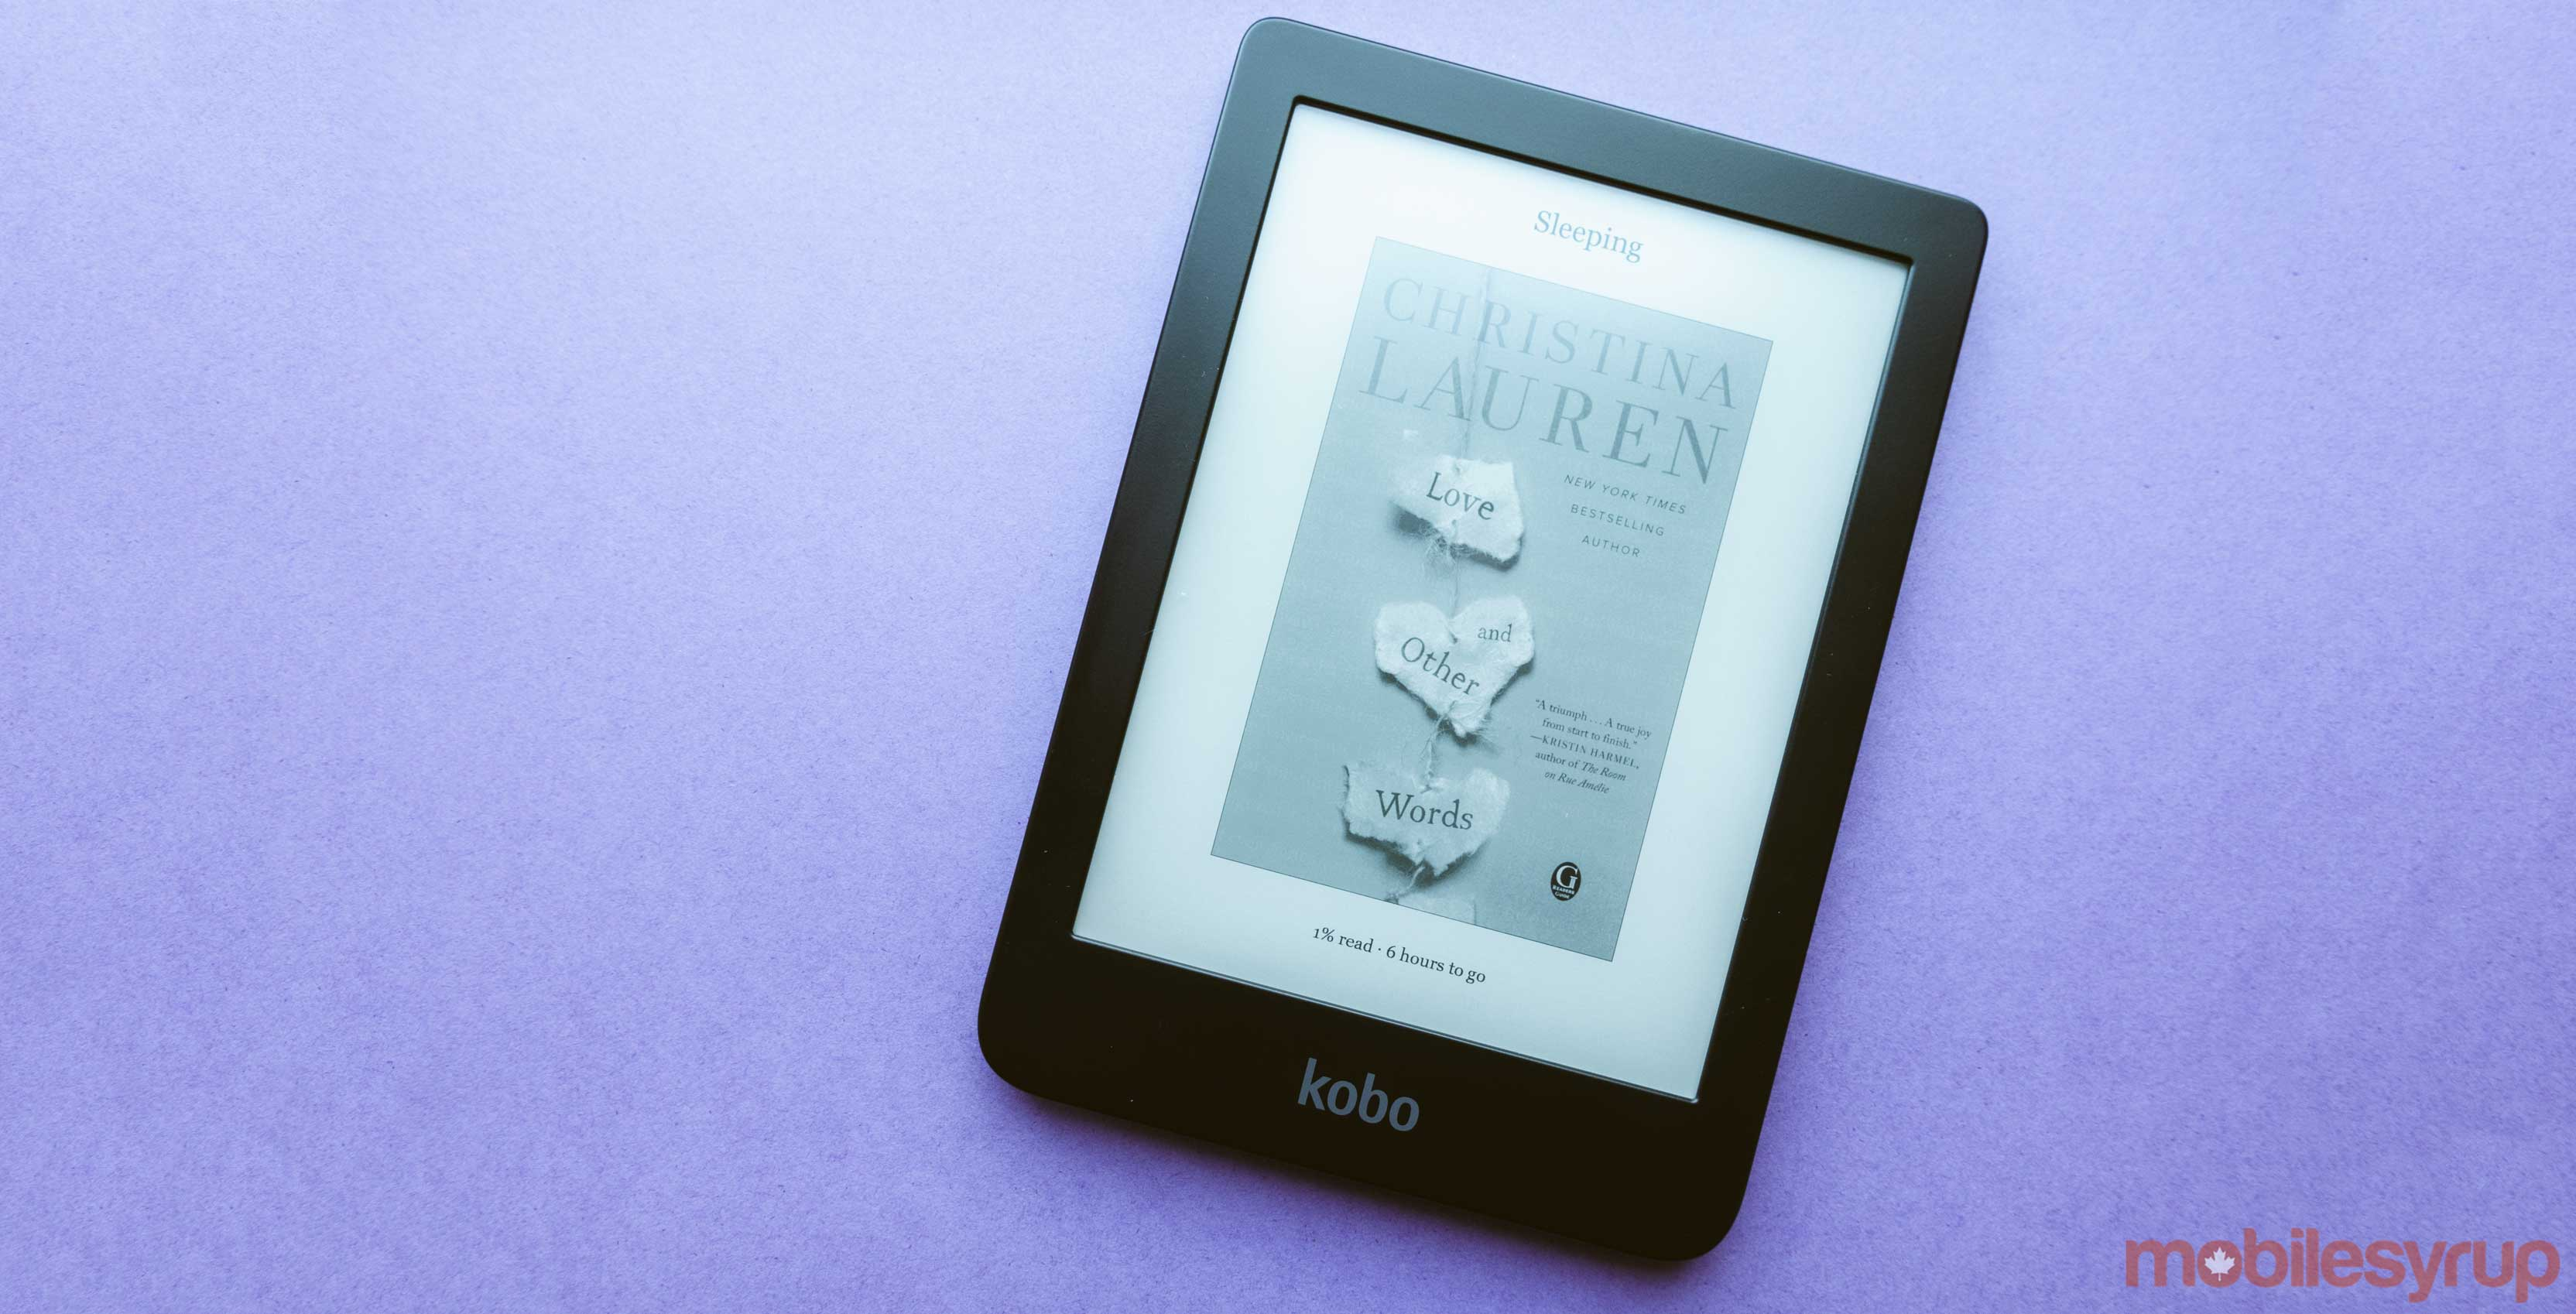 You'll soon be able to use your Kobo e-reader to borrow